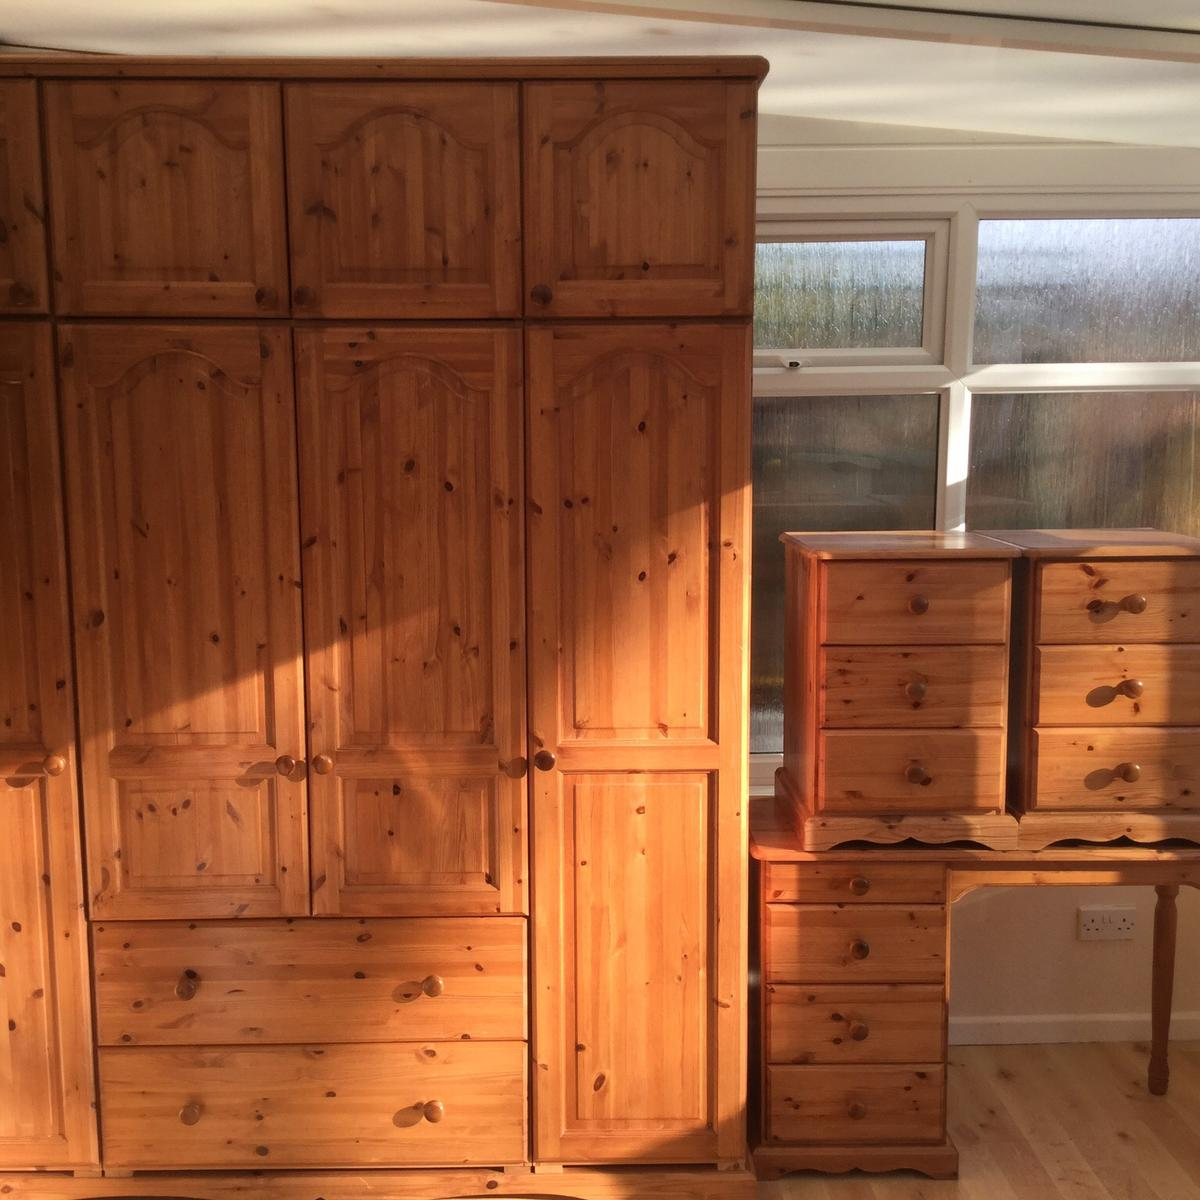 5 Piece Solid Pine Bedroom Furniture set in RH11 Green for ...